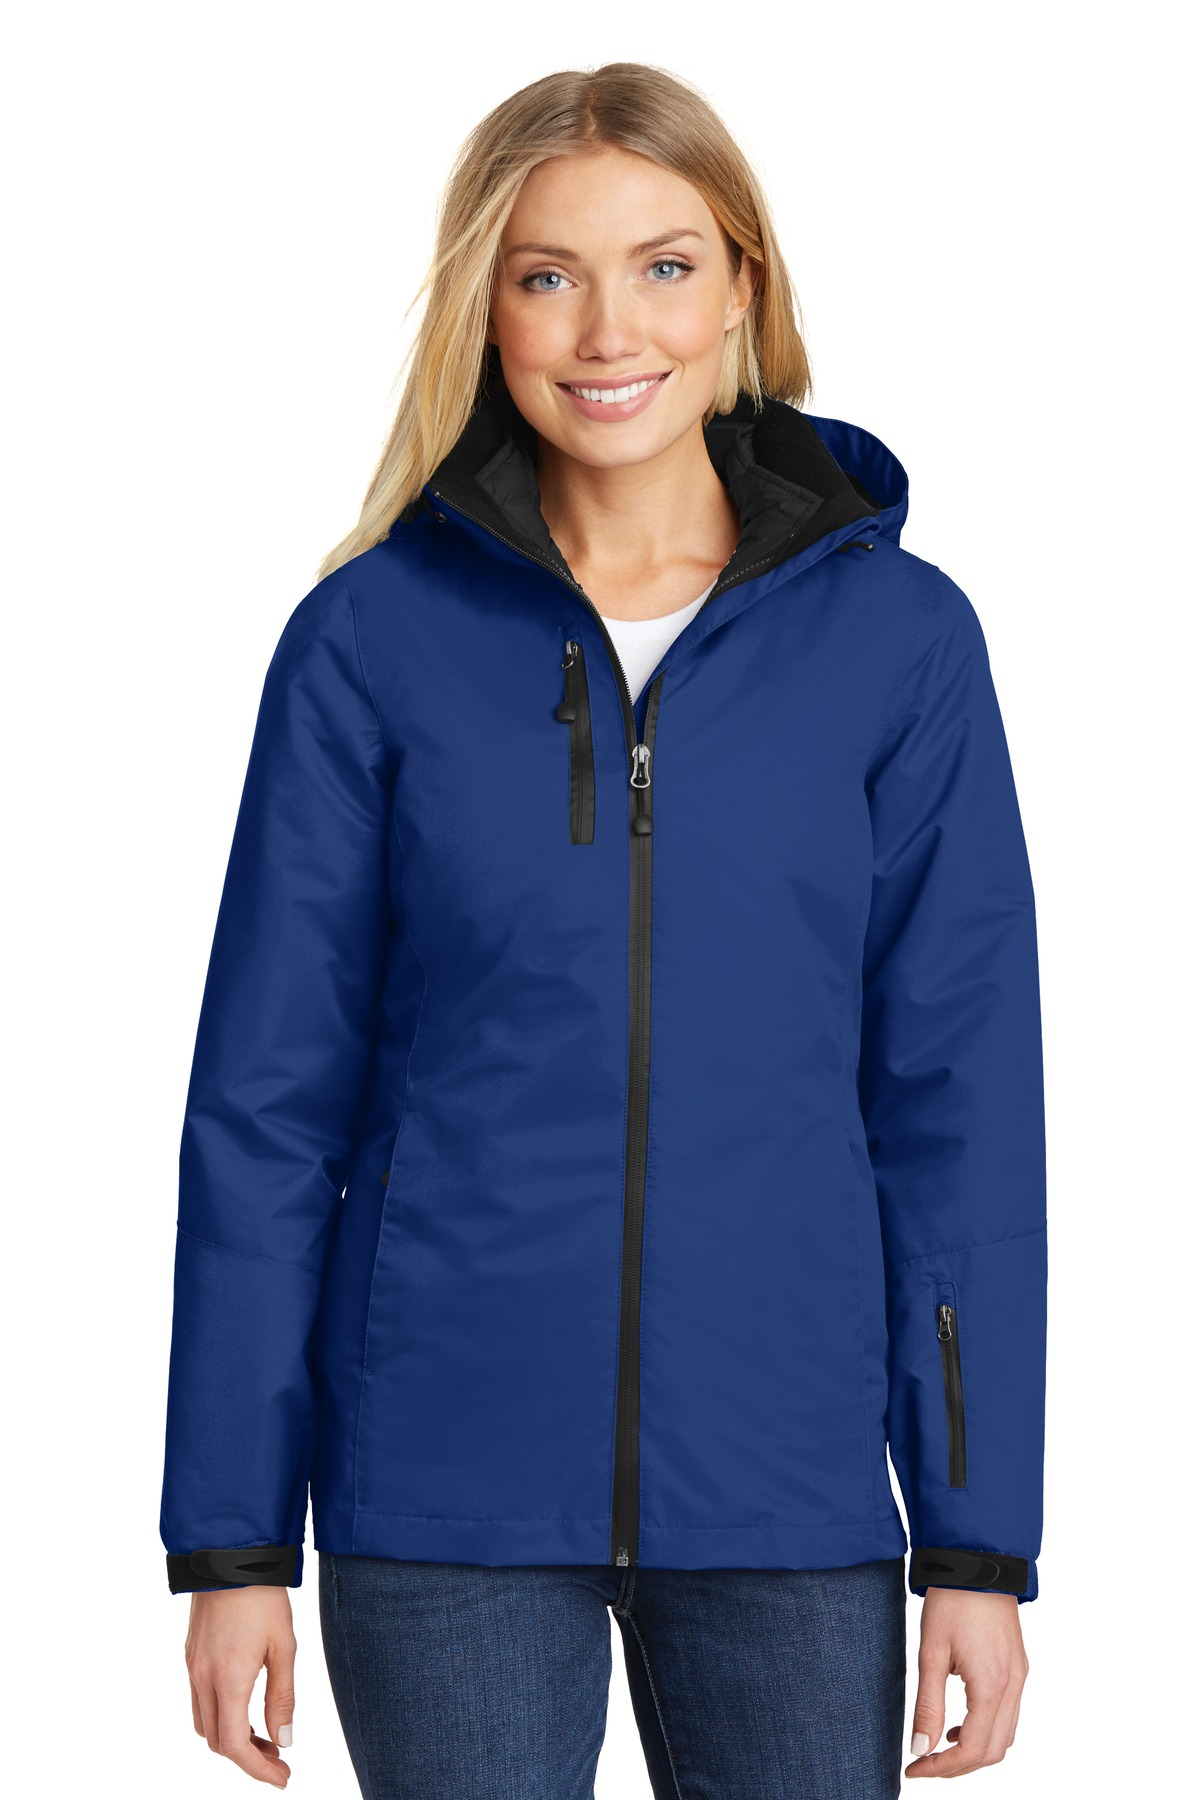 Port Authority  L332 - Ladies Vortex Waterproof 3-in-1 Jacket